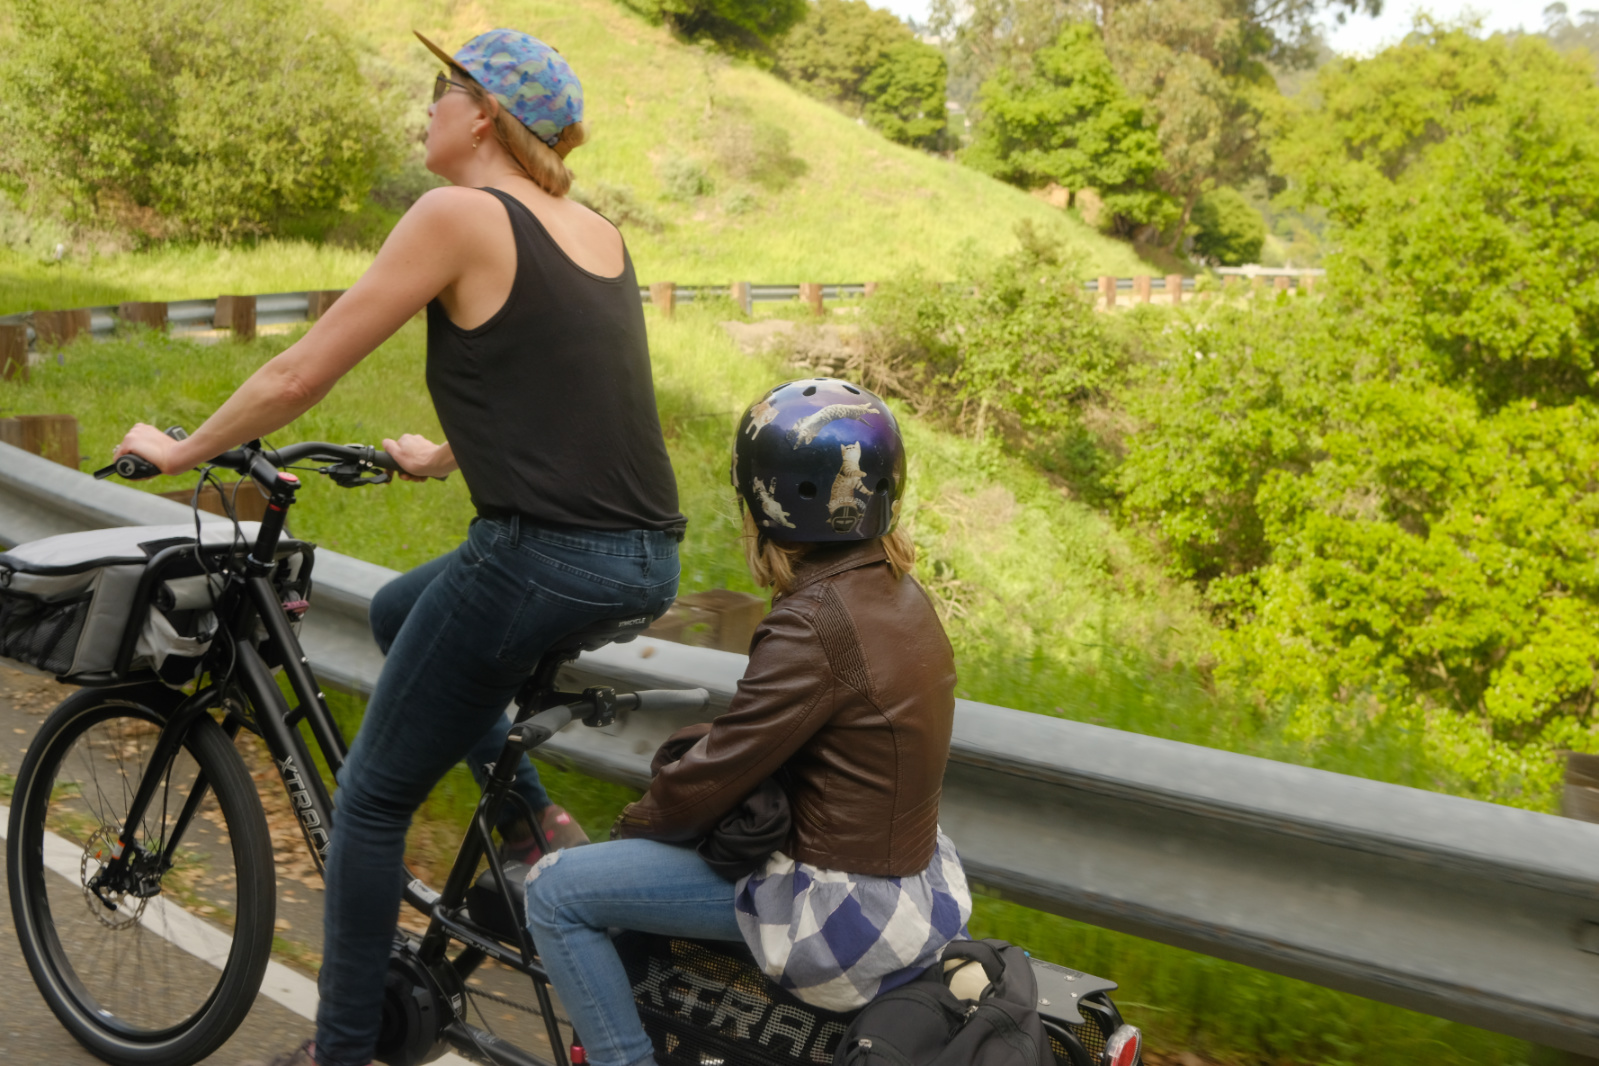 Climbing 1700 feet from Oakland to Tilden Park and then hauling picnic provisions down a gravel path to a picnic with friends. #ebikesarecheating